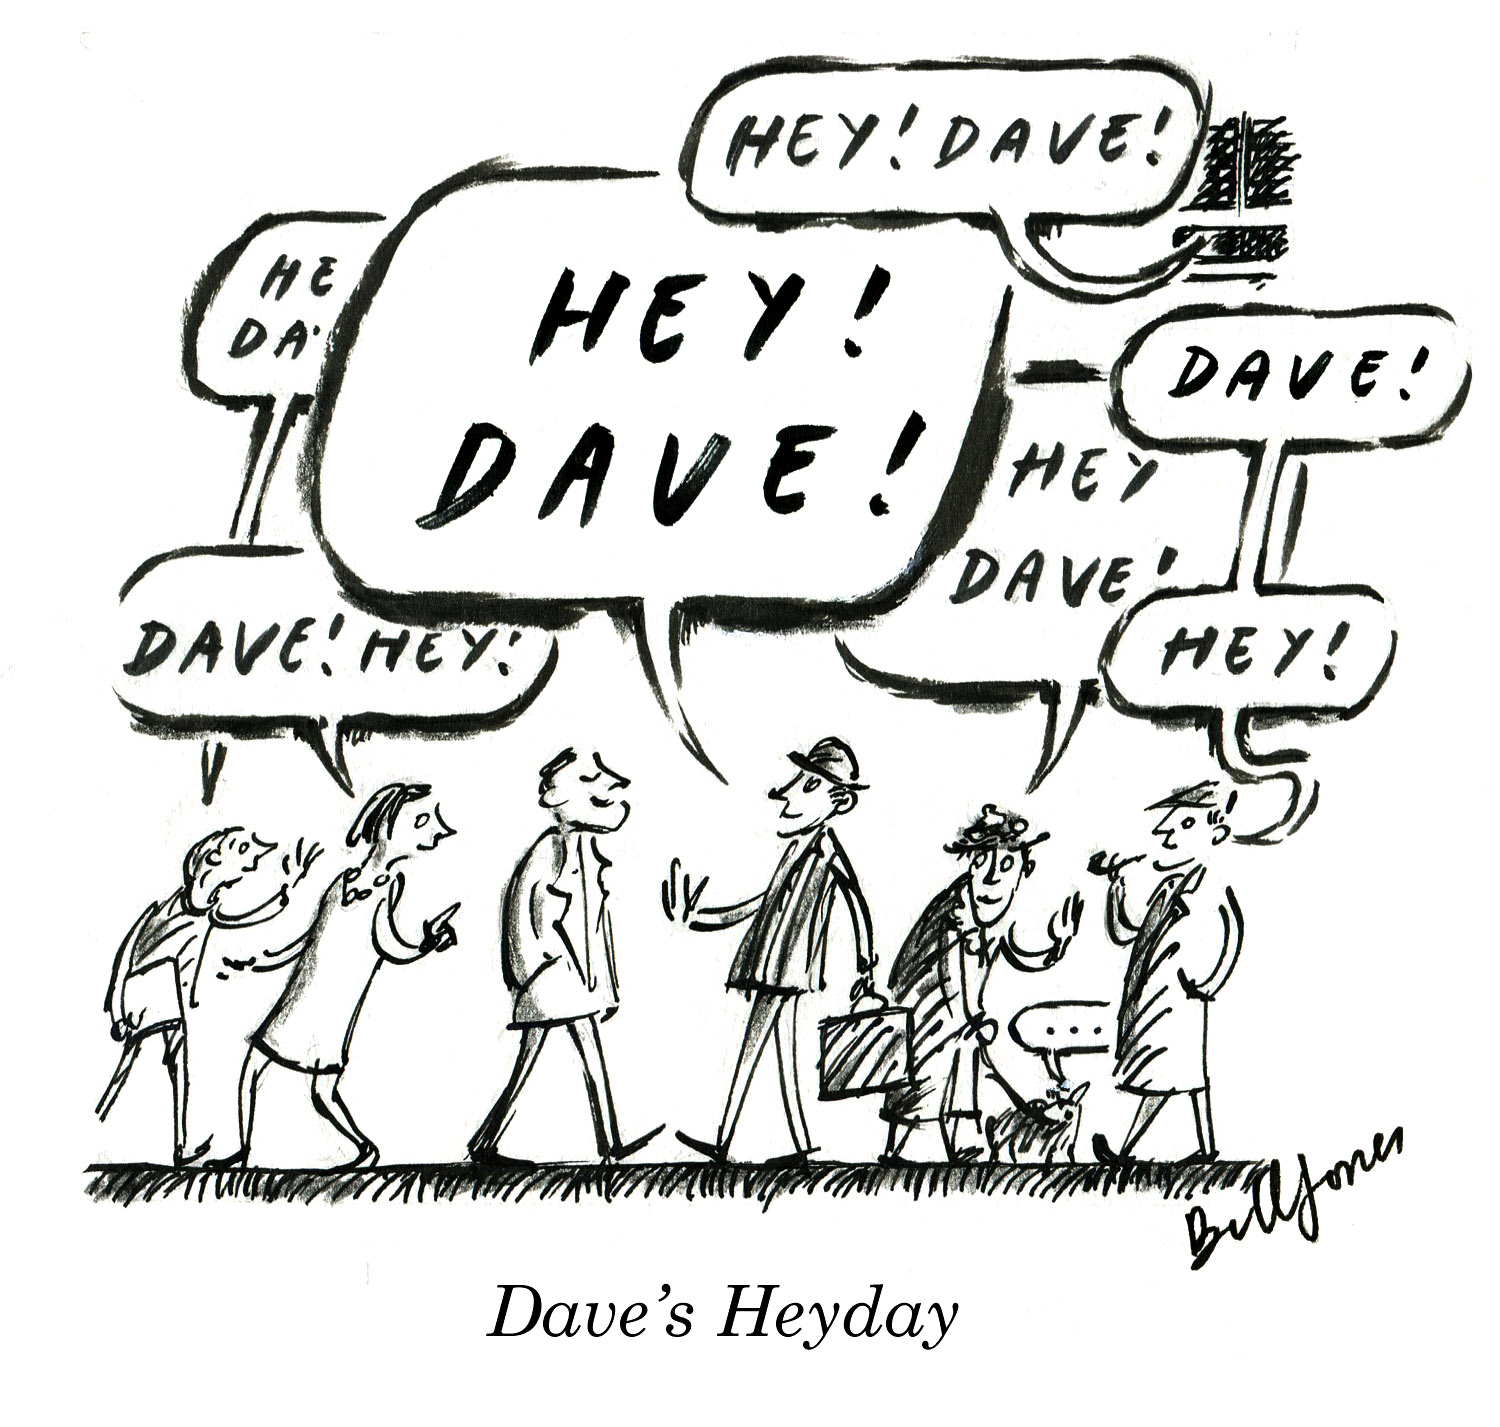 - Here is a link to a blog which I started in 2009 as a repository for my puns and cartoons:Hawker's Pot(For up-to-date information about current projects, please check the blog on this website.)